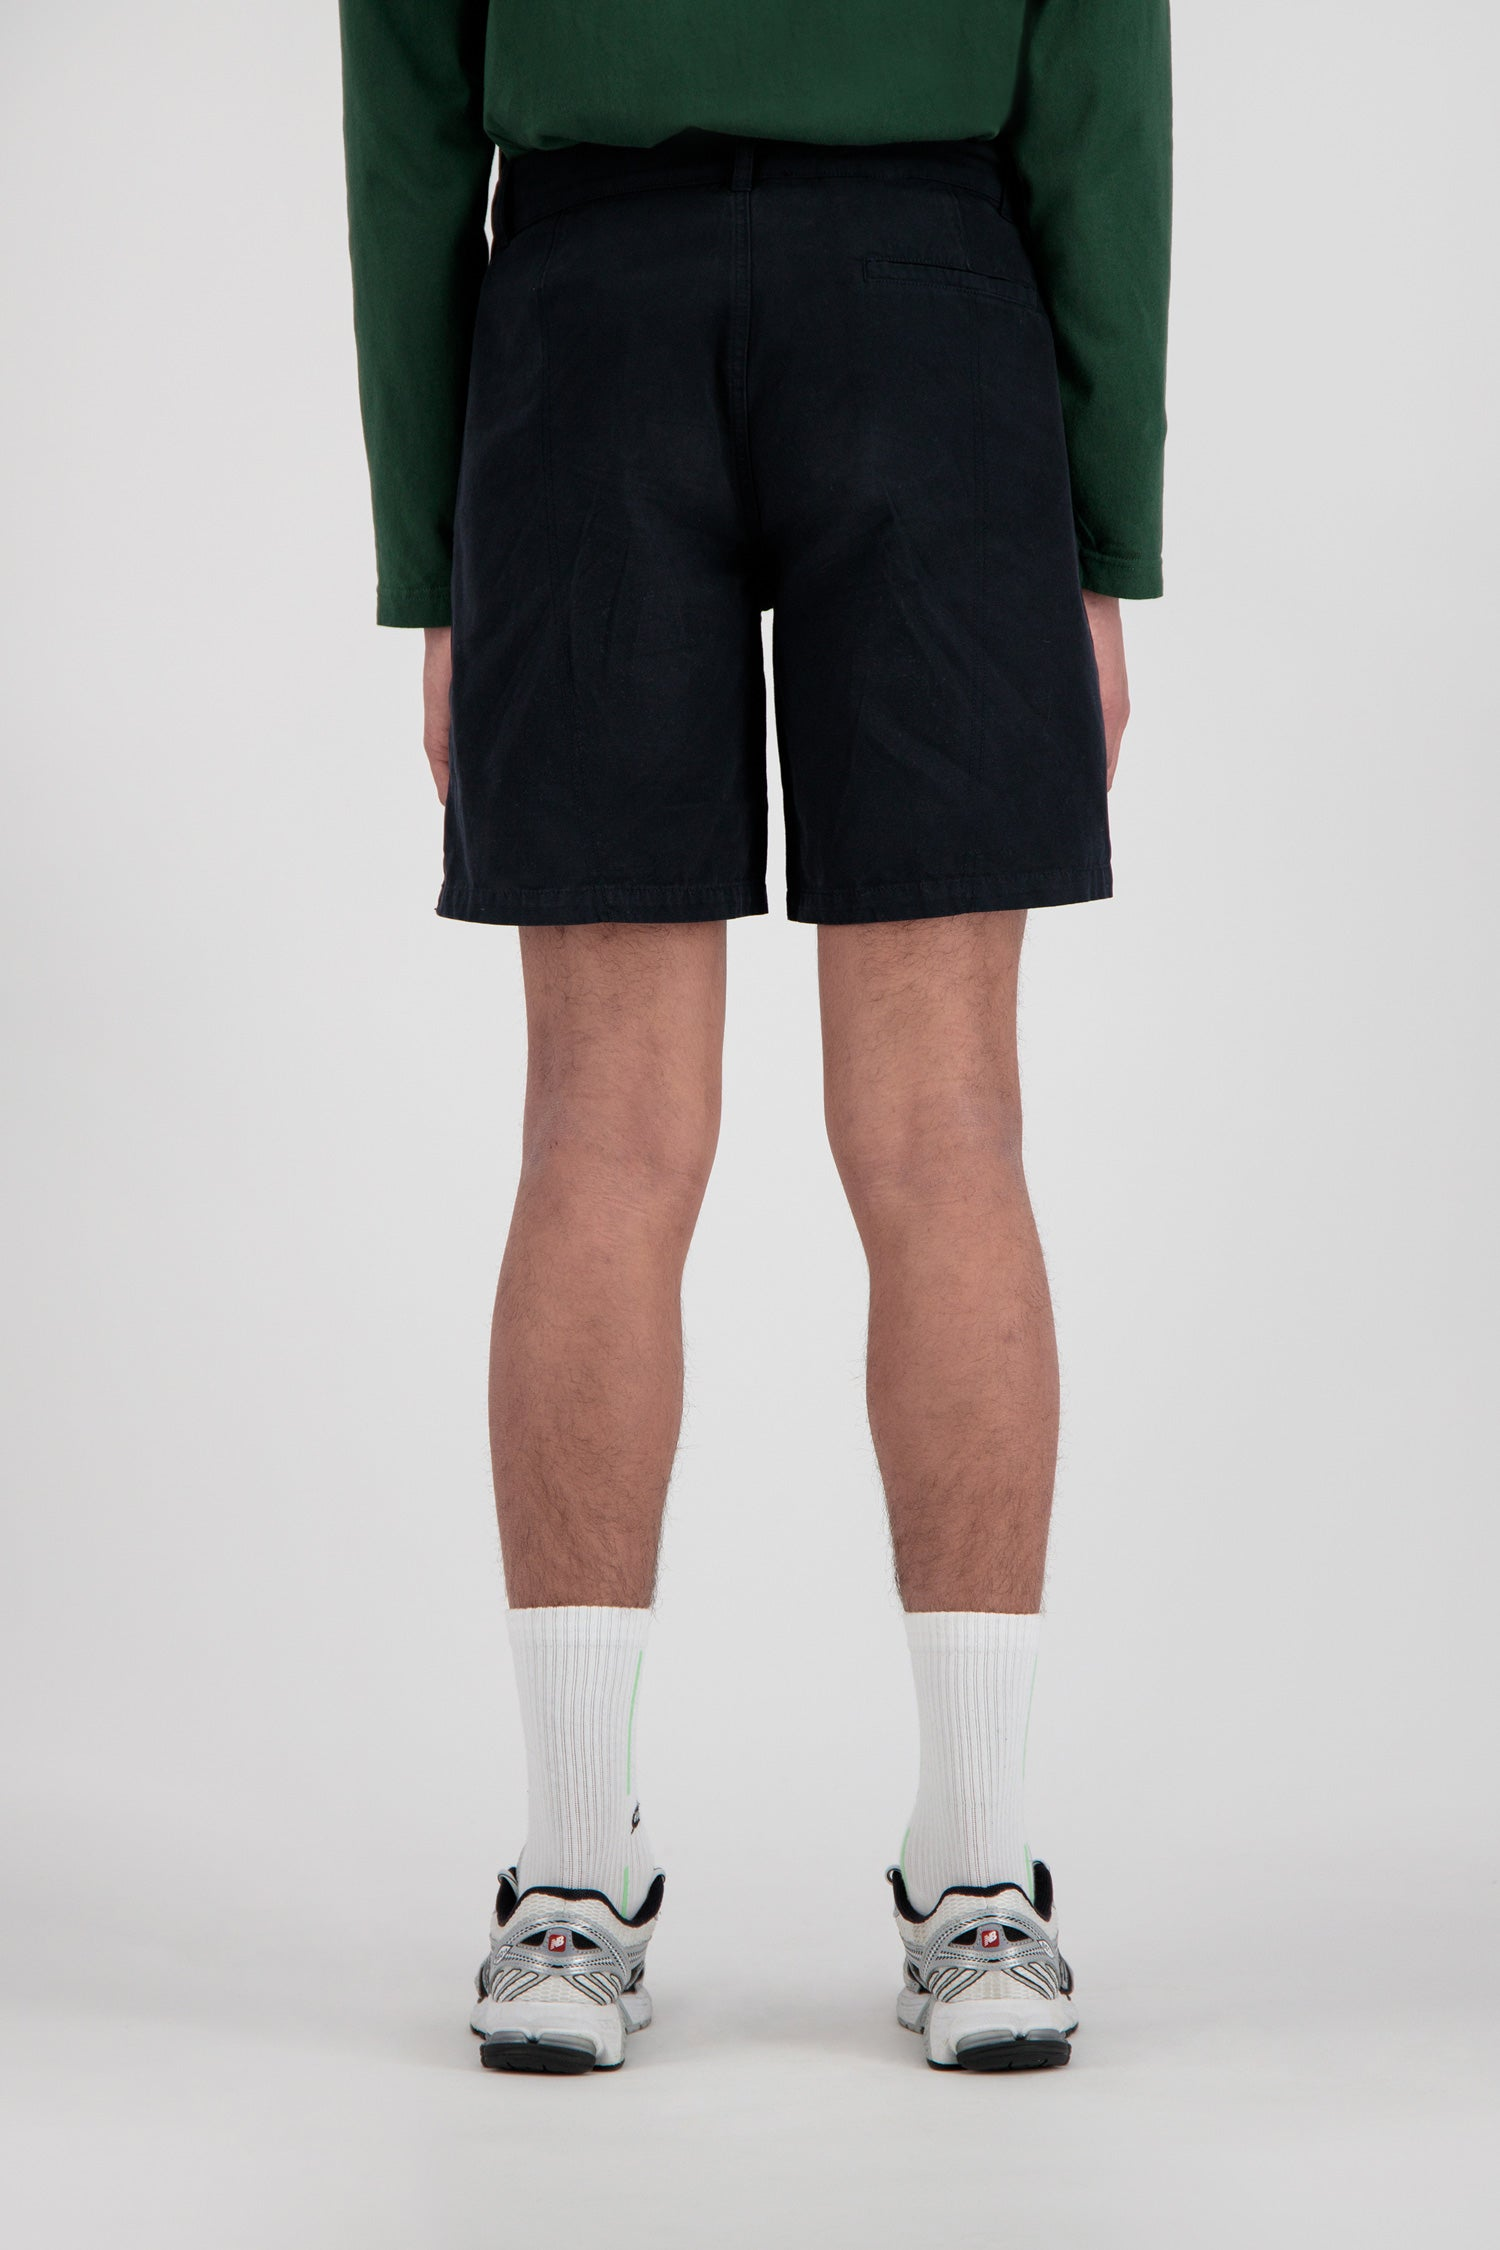 ØLÅF Uniform Shorts <br>Navy